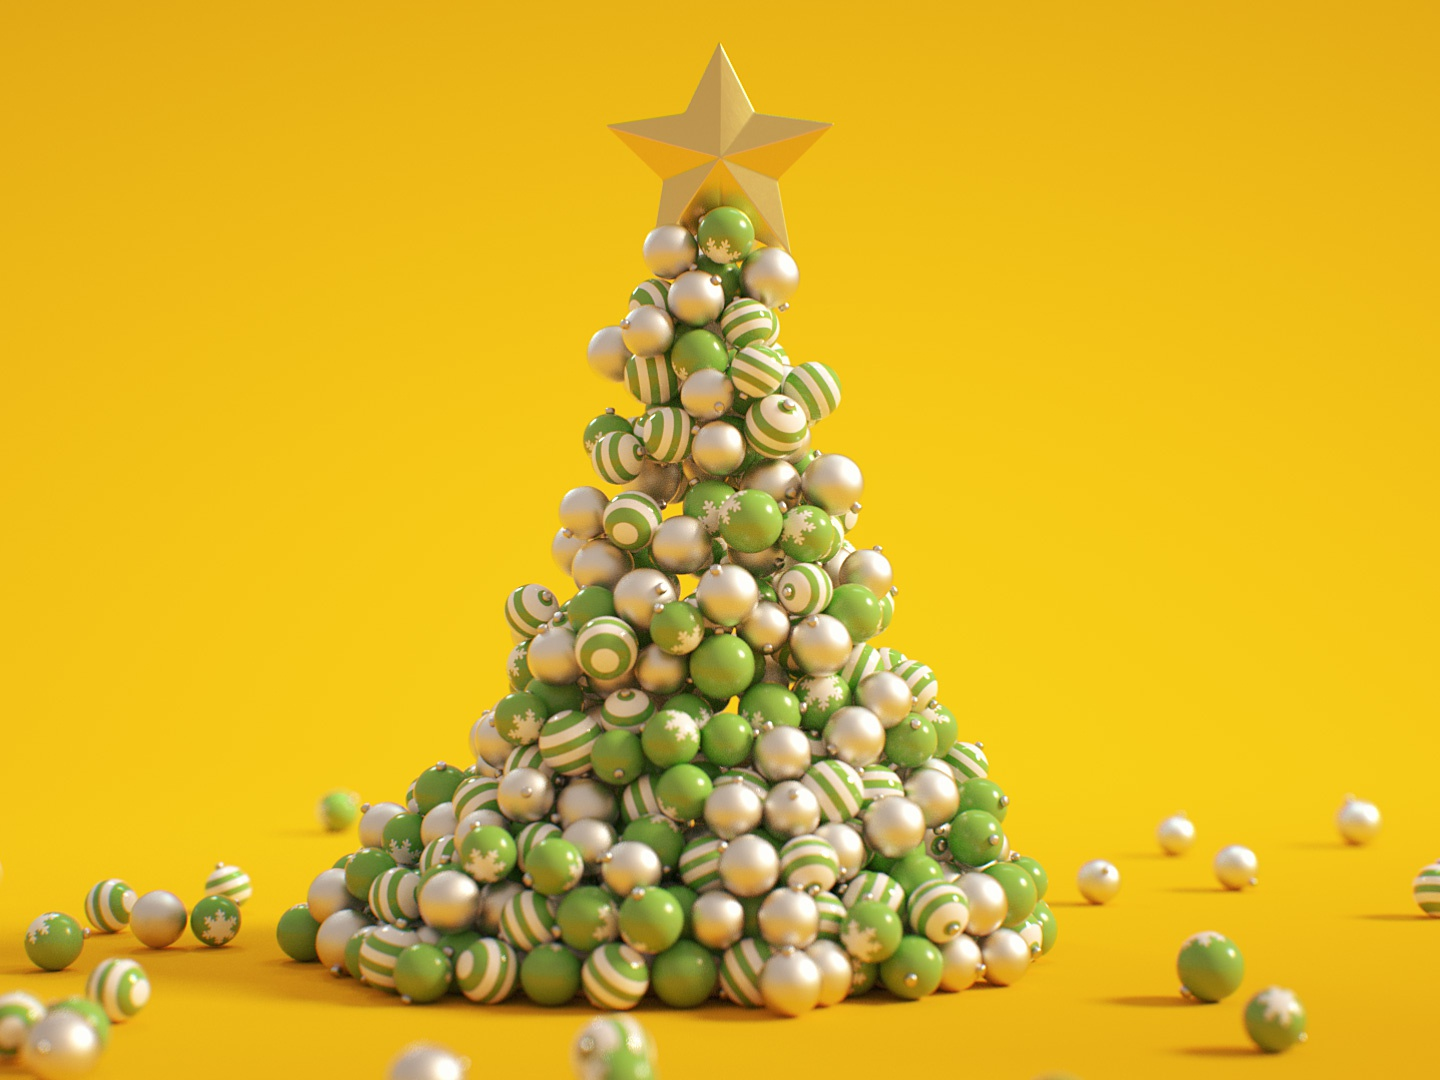 C4D Christmas Tree - Cinema 4D Tutorial (Free Project) by CG